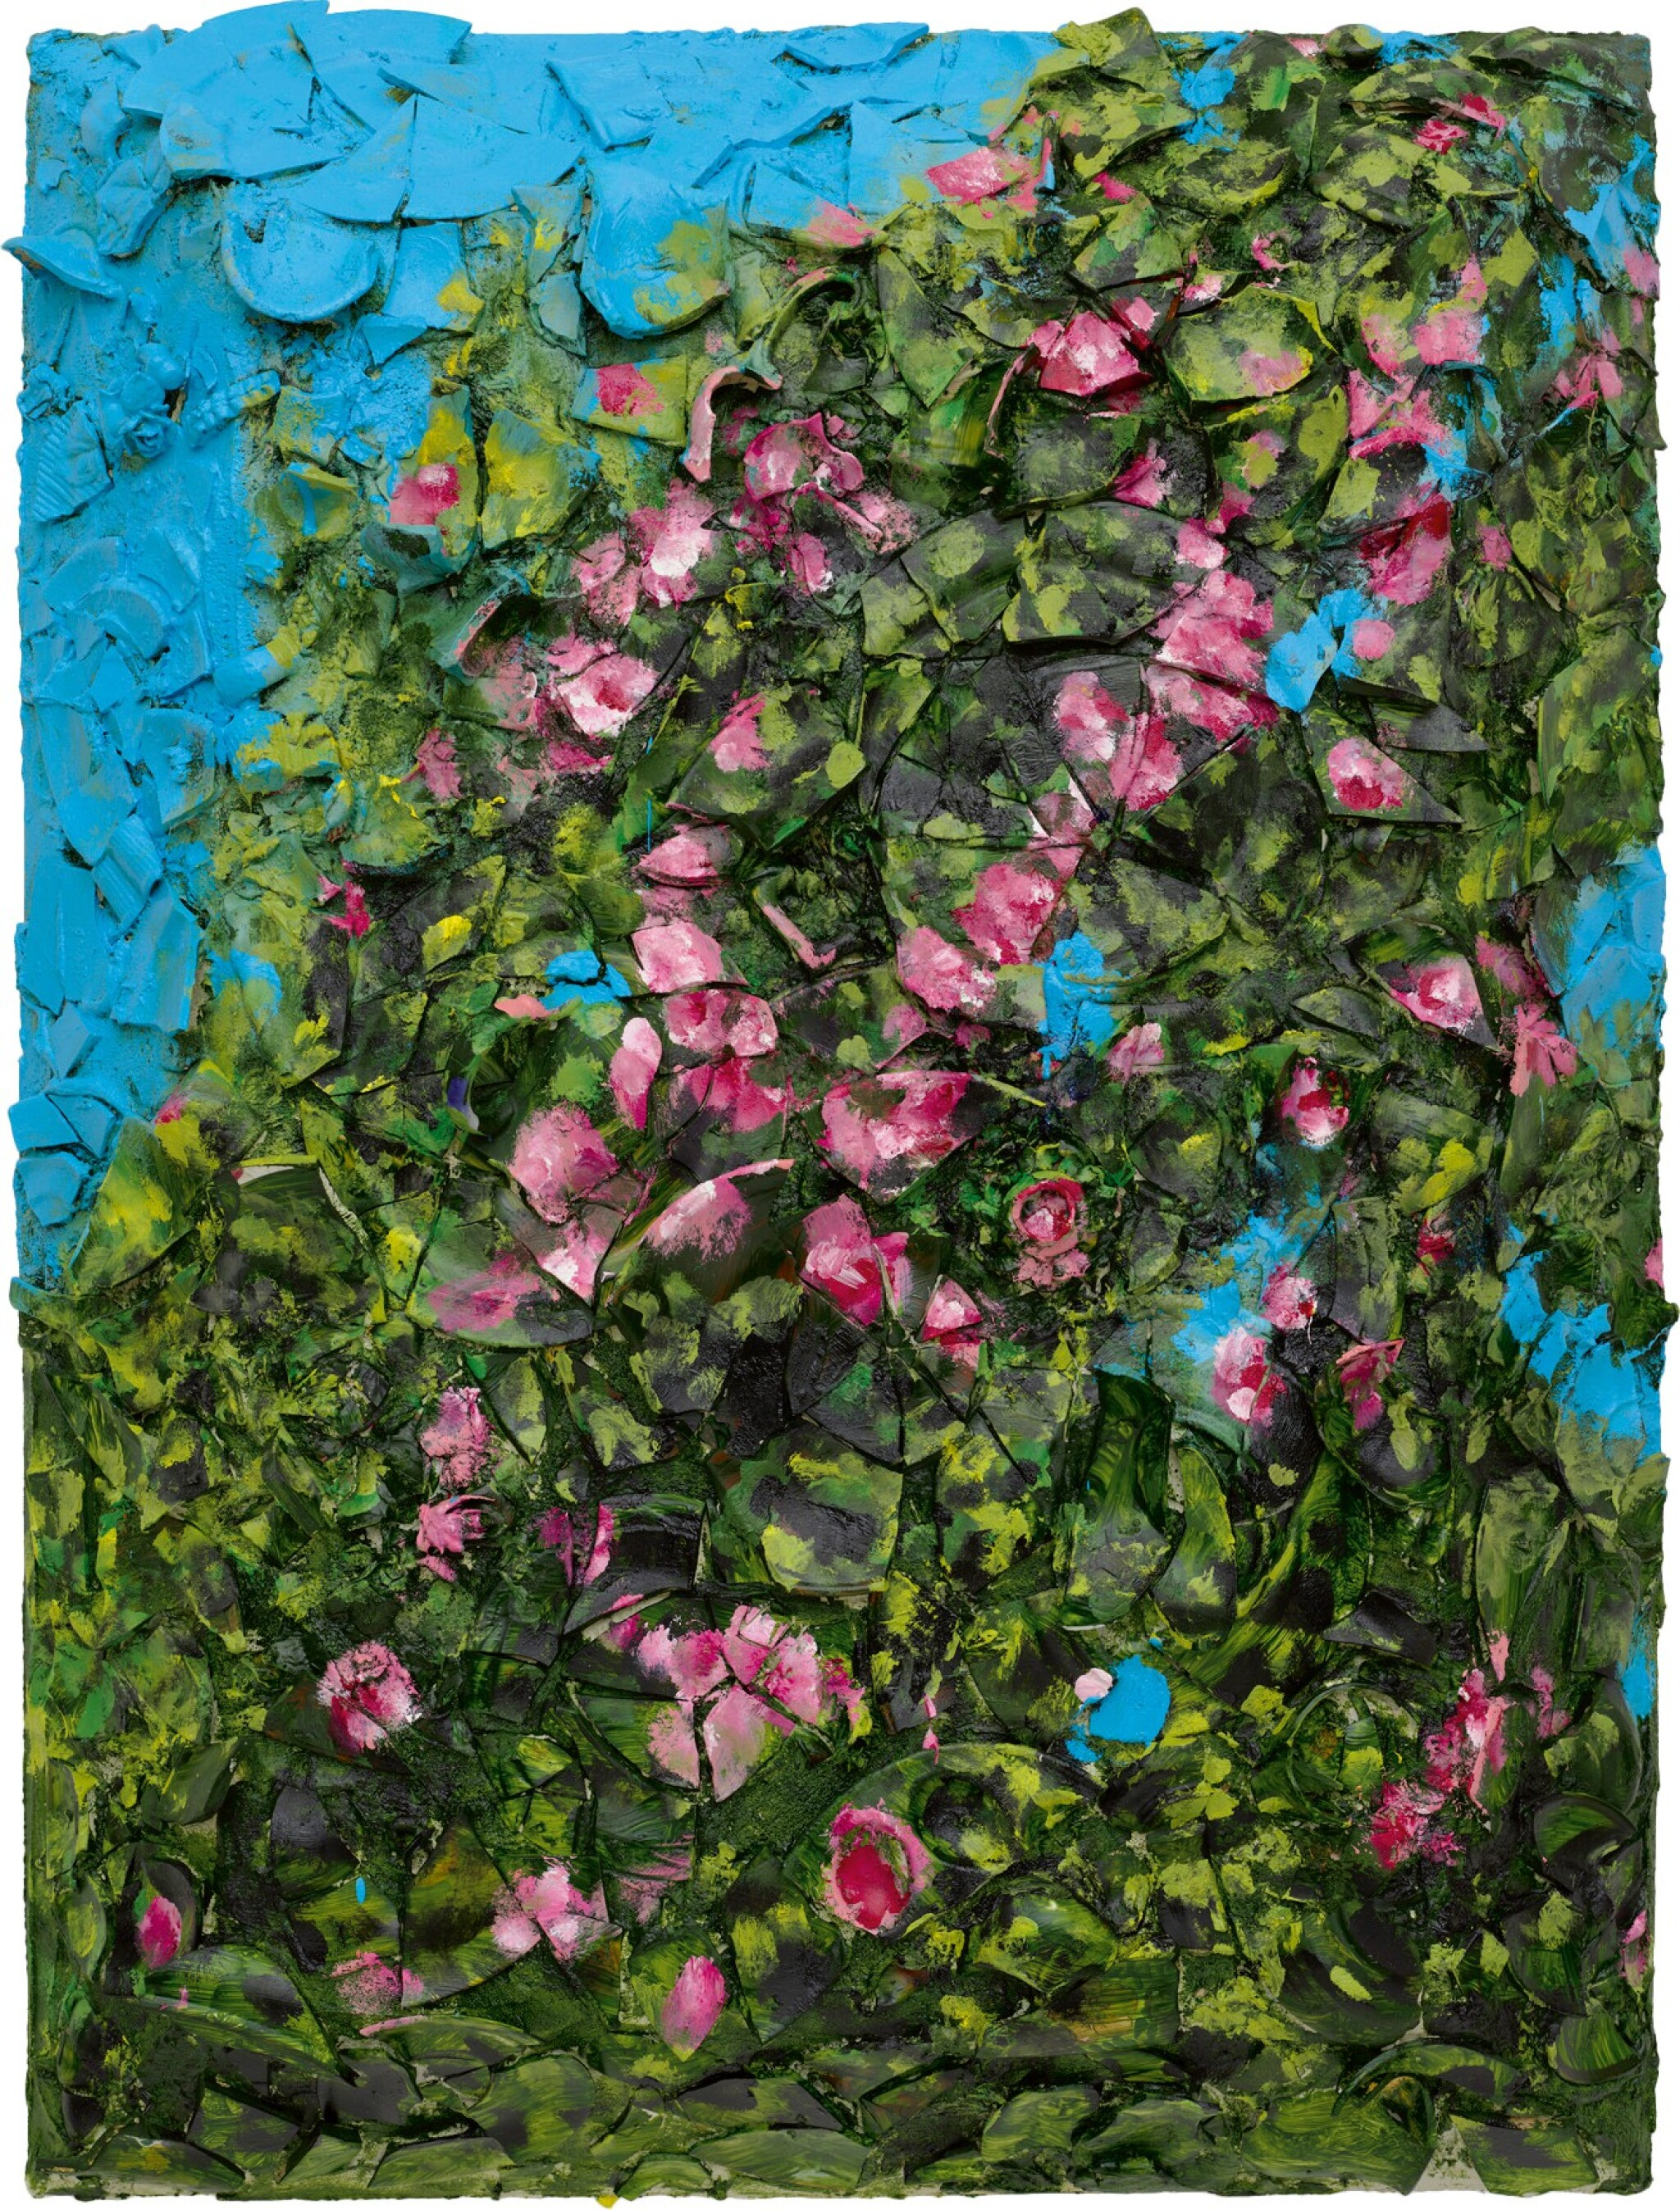 View full screen - View 1 of Lot 39. Julian Schnabel 朱利安・許納貝 | Victory After S-chanf VI S-chanf 後的勝利 6.